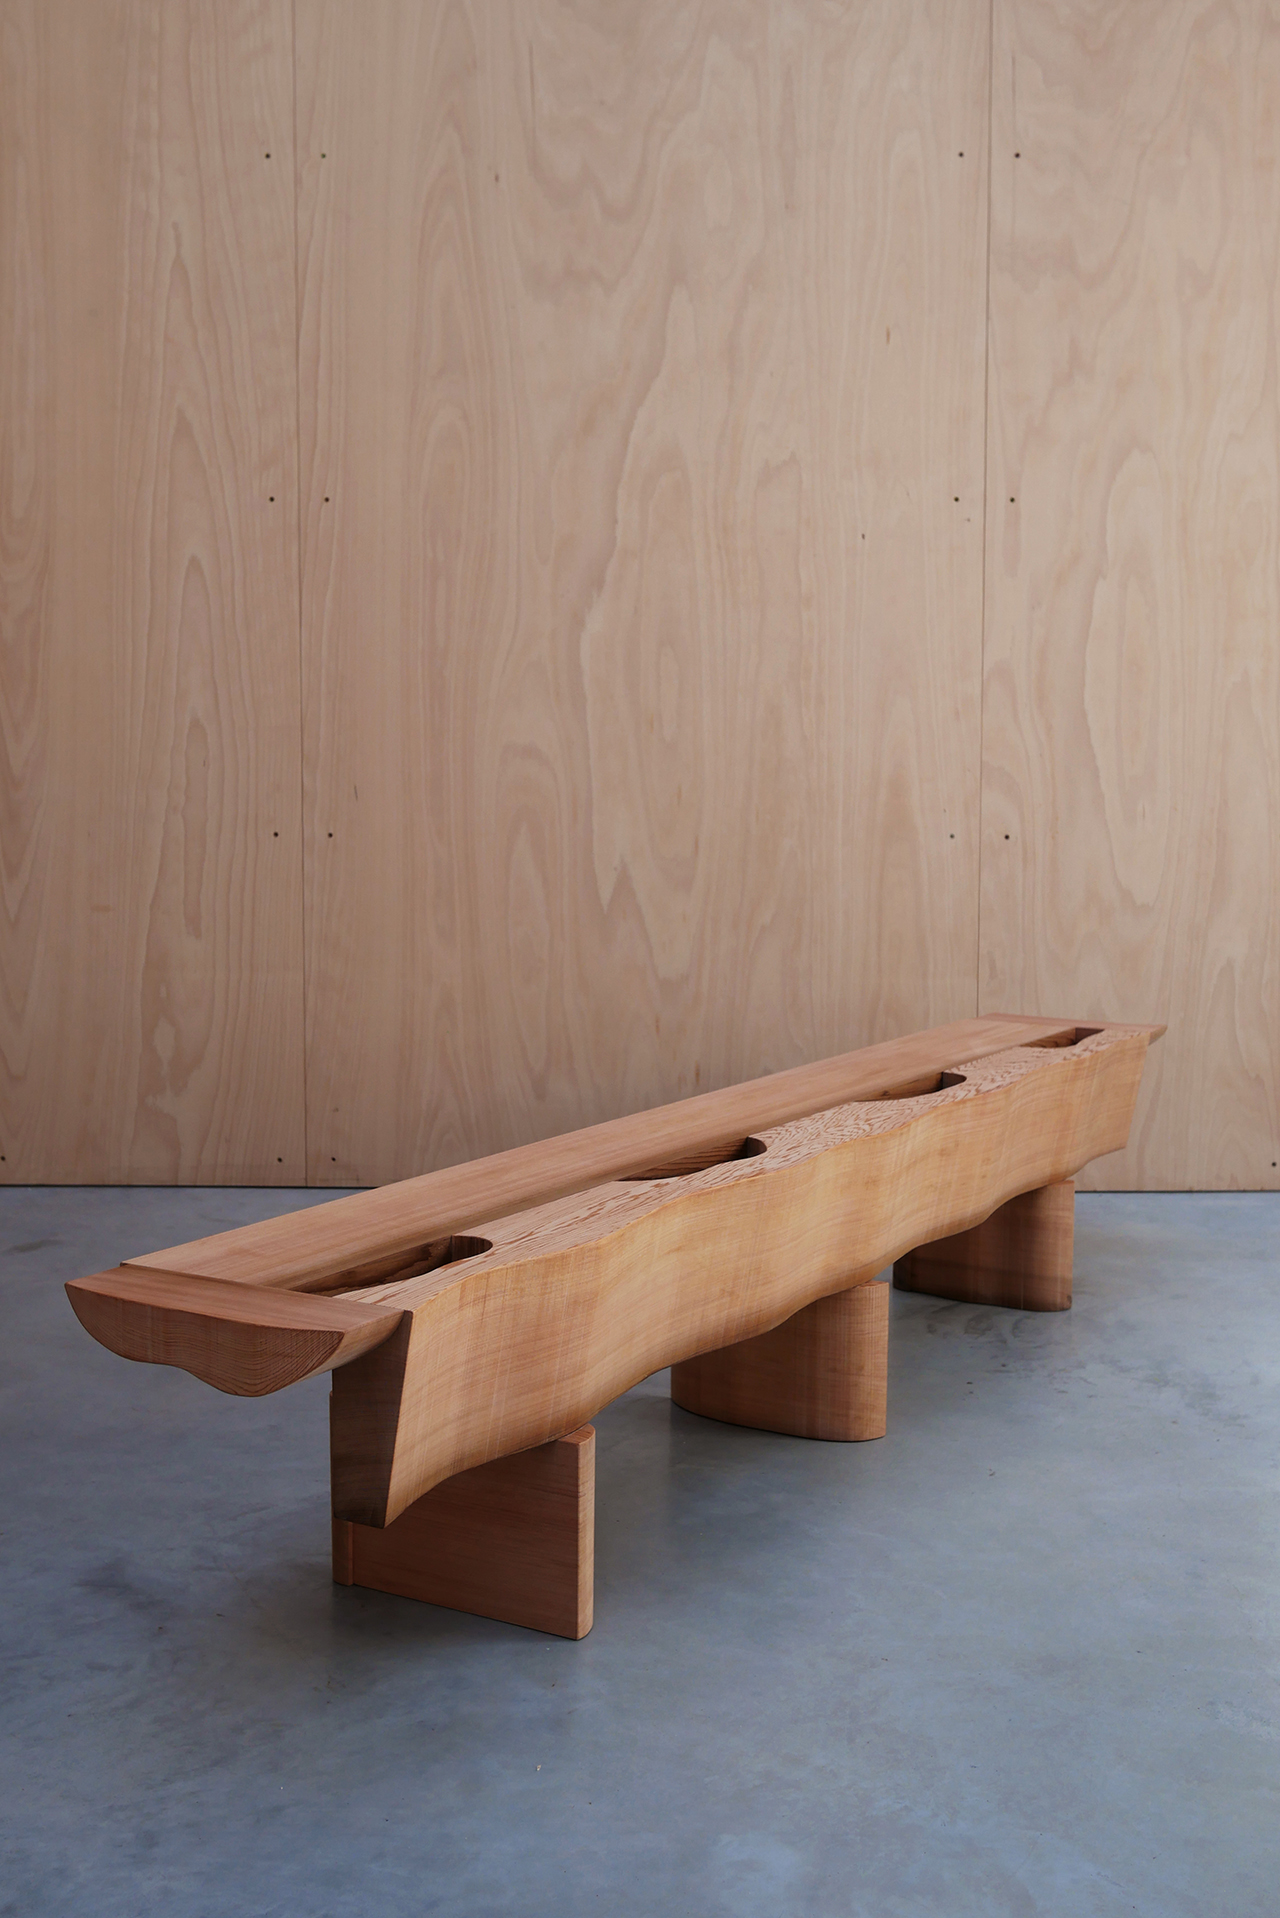 asymmetrical red cedar bench on concrete floor in front of wood wall